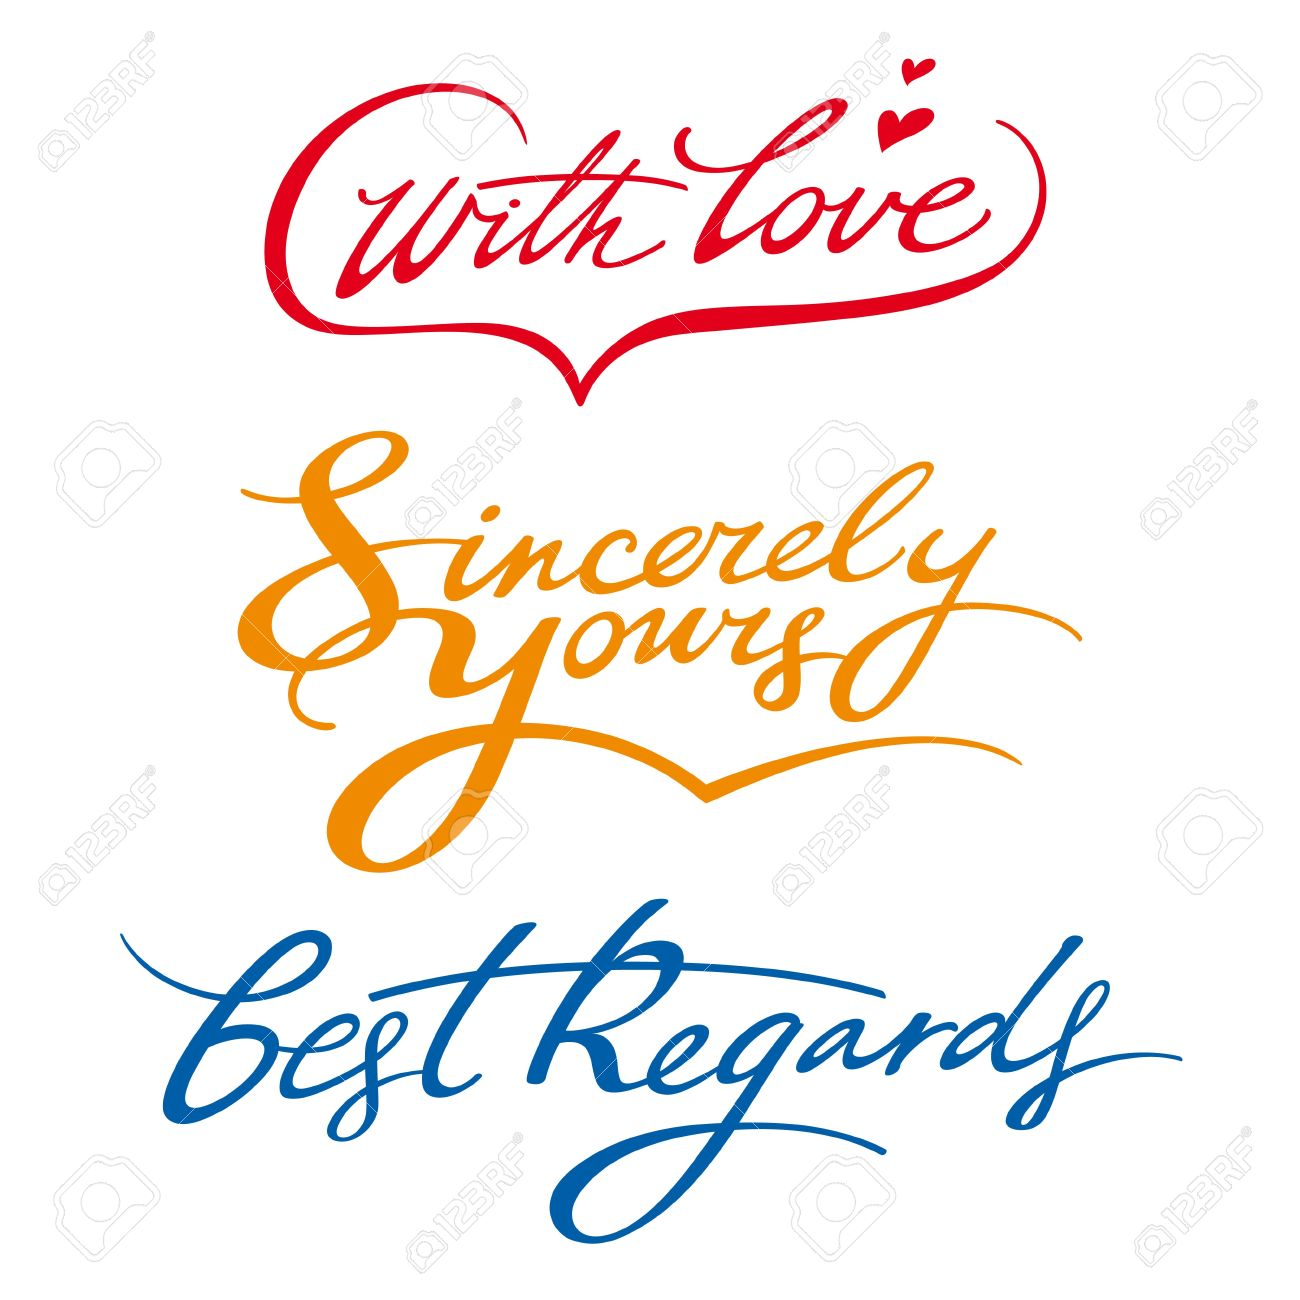 best regards sincerely yours with love signature royalty free